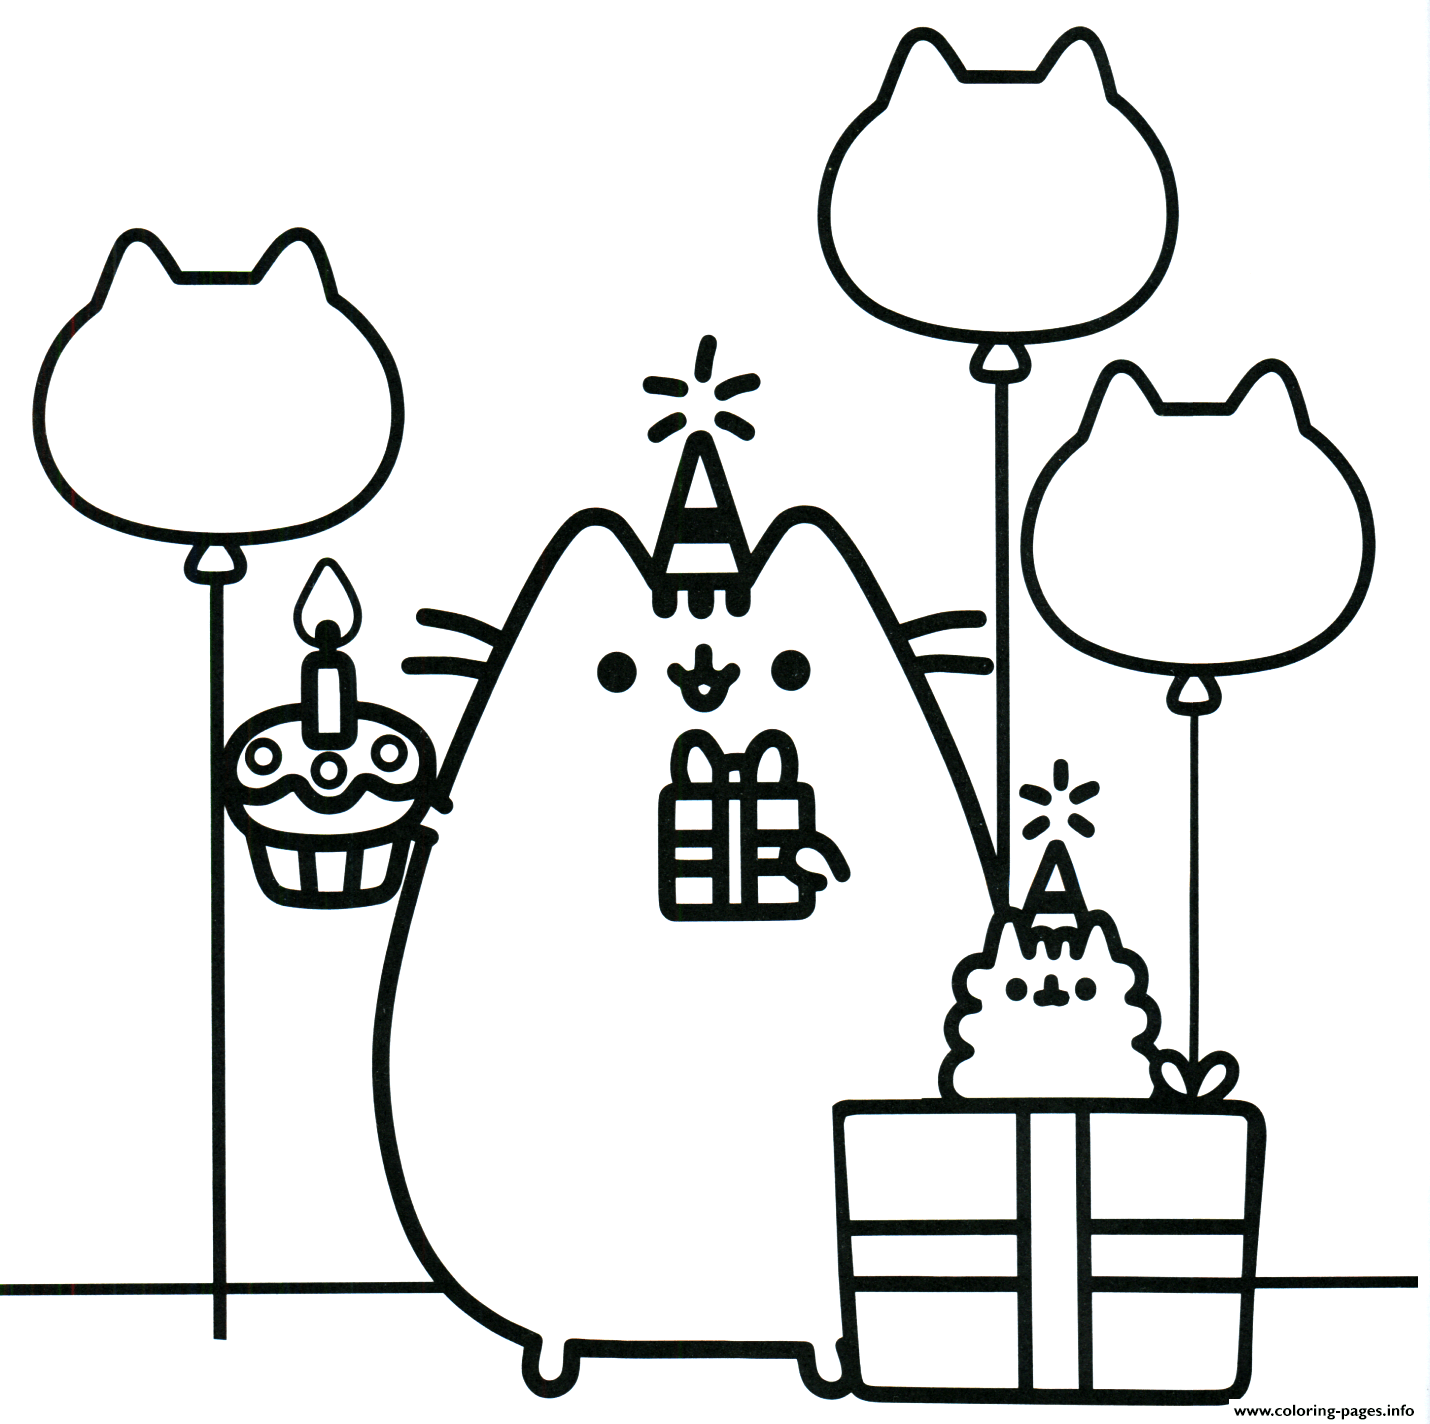 Pusheen Coloring Pages Unicorn Coloring Pages Cartoon Coloring